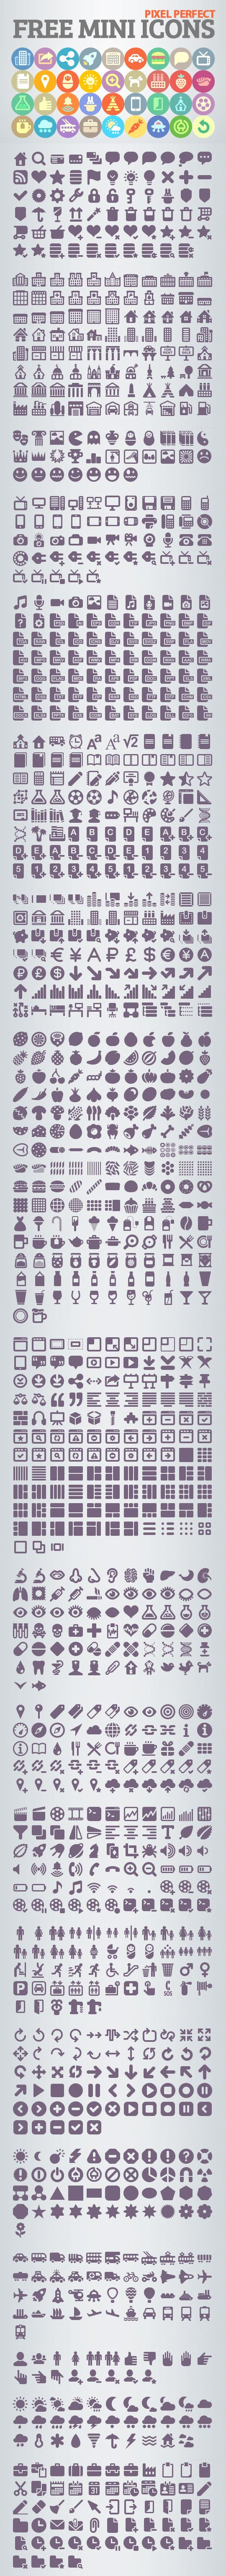 1200+ PixelPerfect Free Mini Icons, Best For UI Design